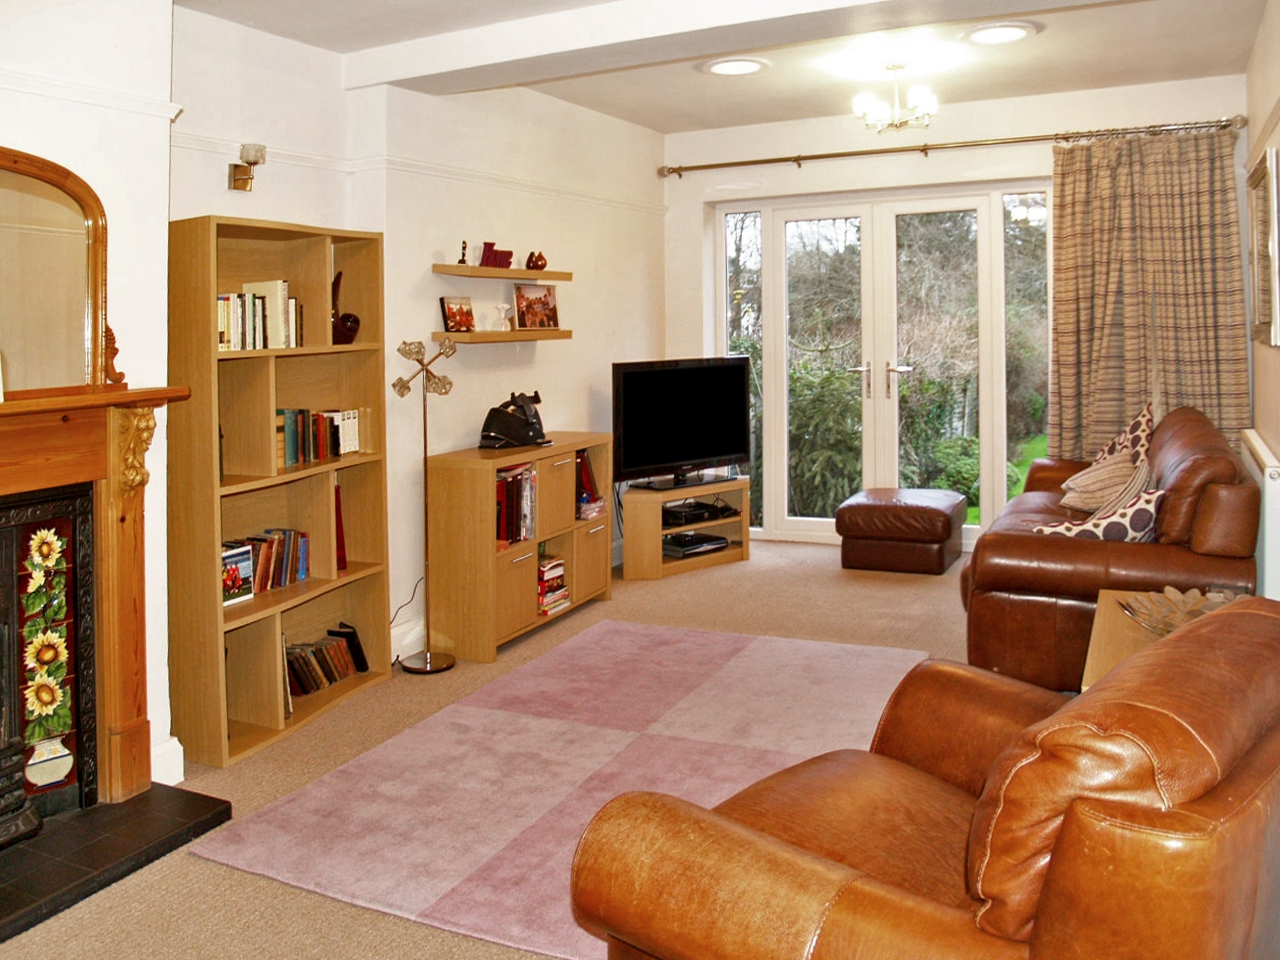 5 bedroom semi detached house SSTC in Solihull - photograph 3.